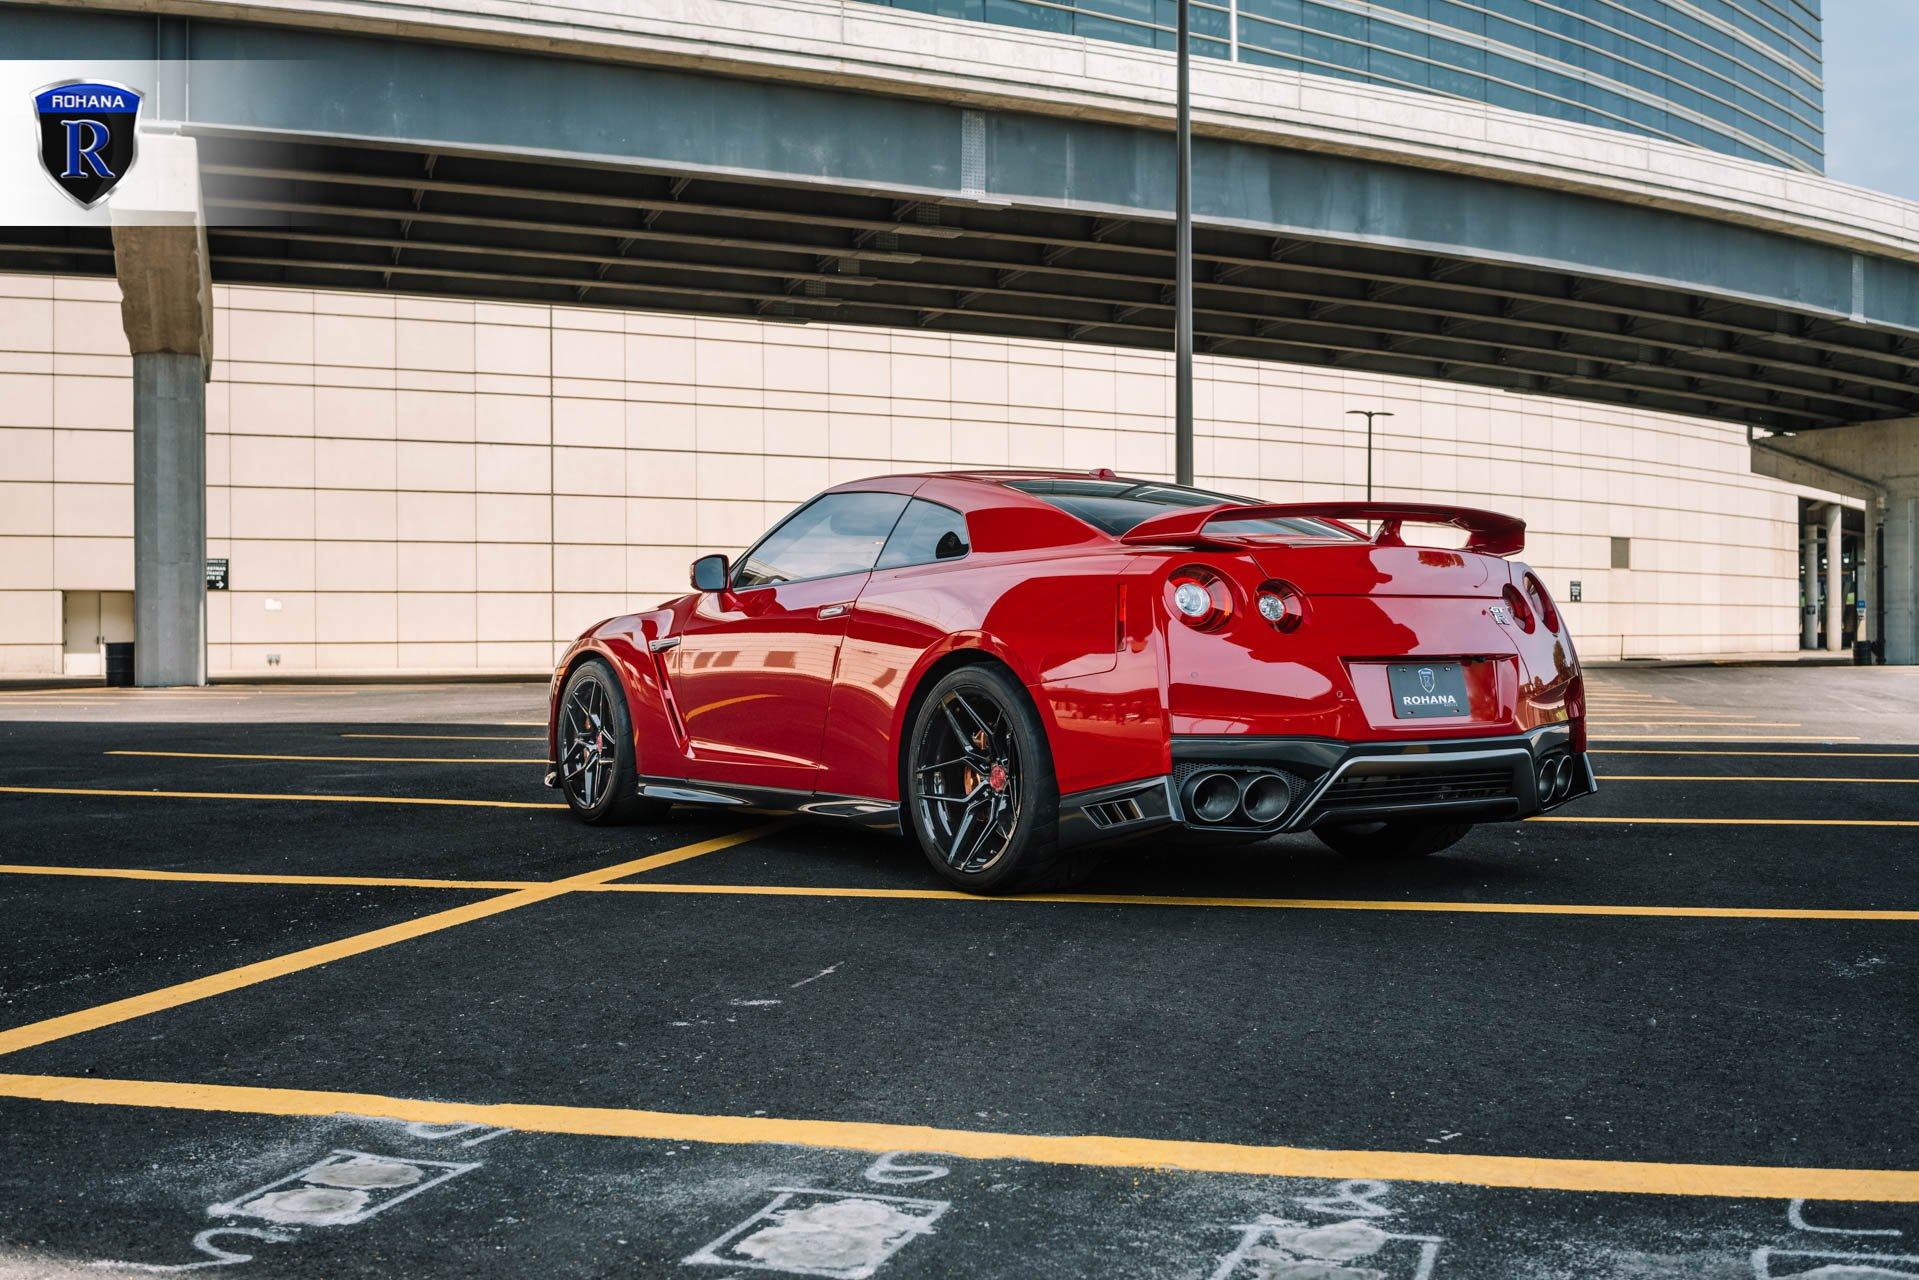 Red Nissan GT-R with Aftermarket Rear Diffuser - Photo by Rohana Wheels